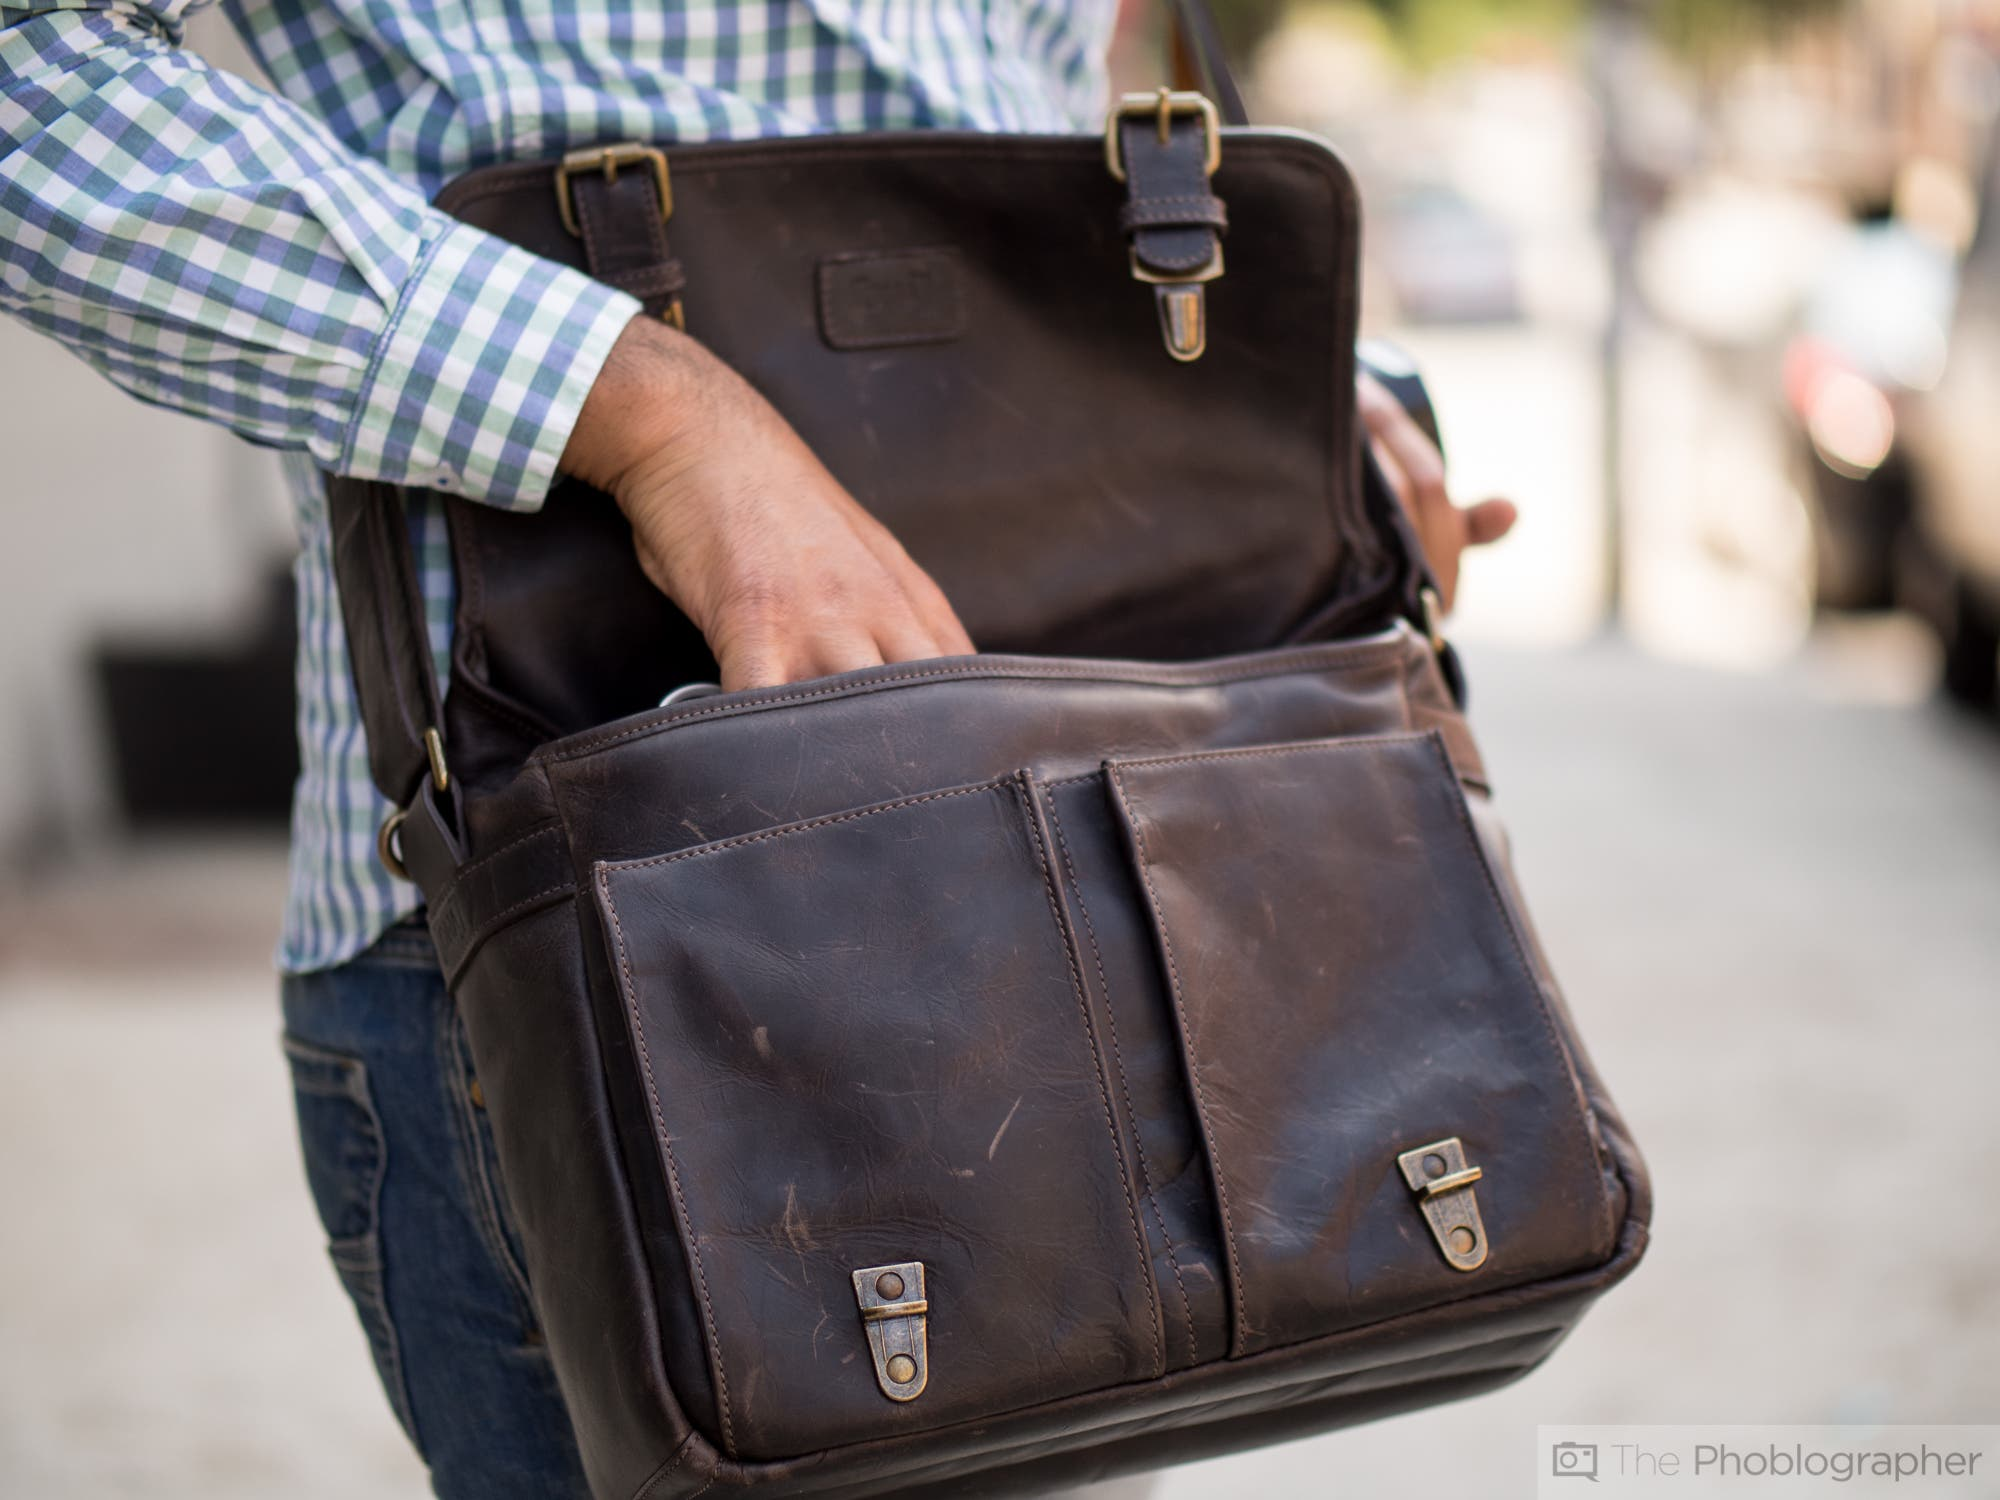 5 of Our Top Camera Bag Picks for Portrait Photographers